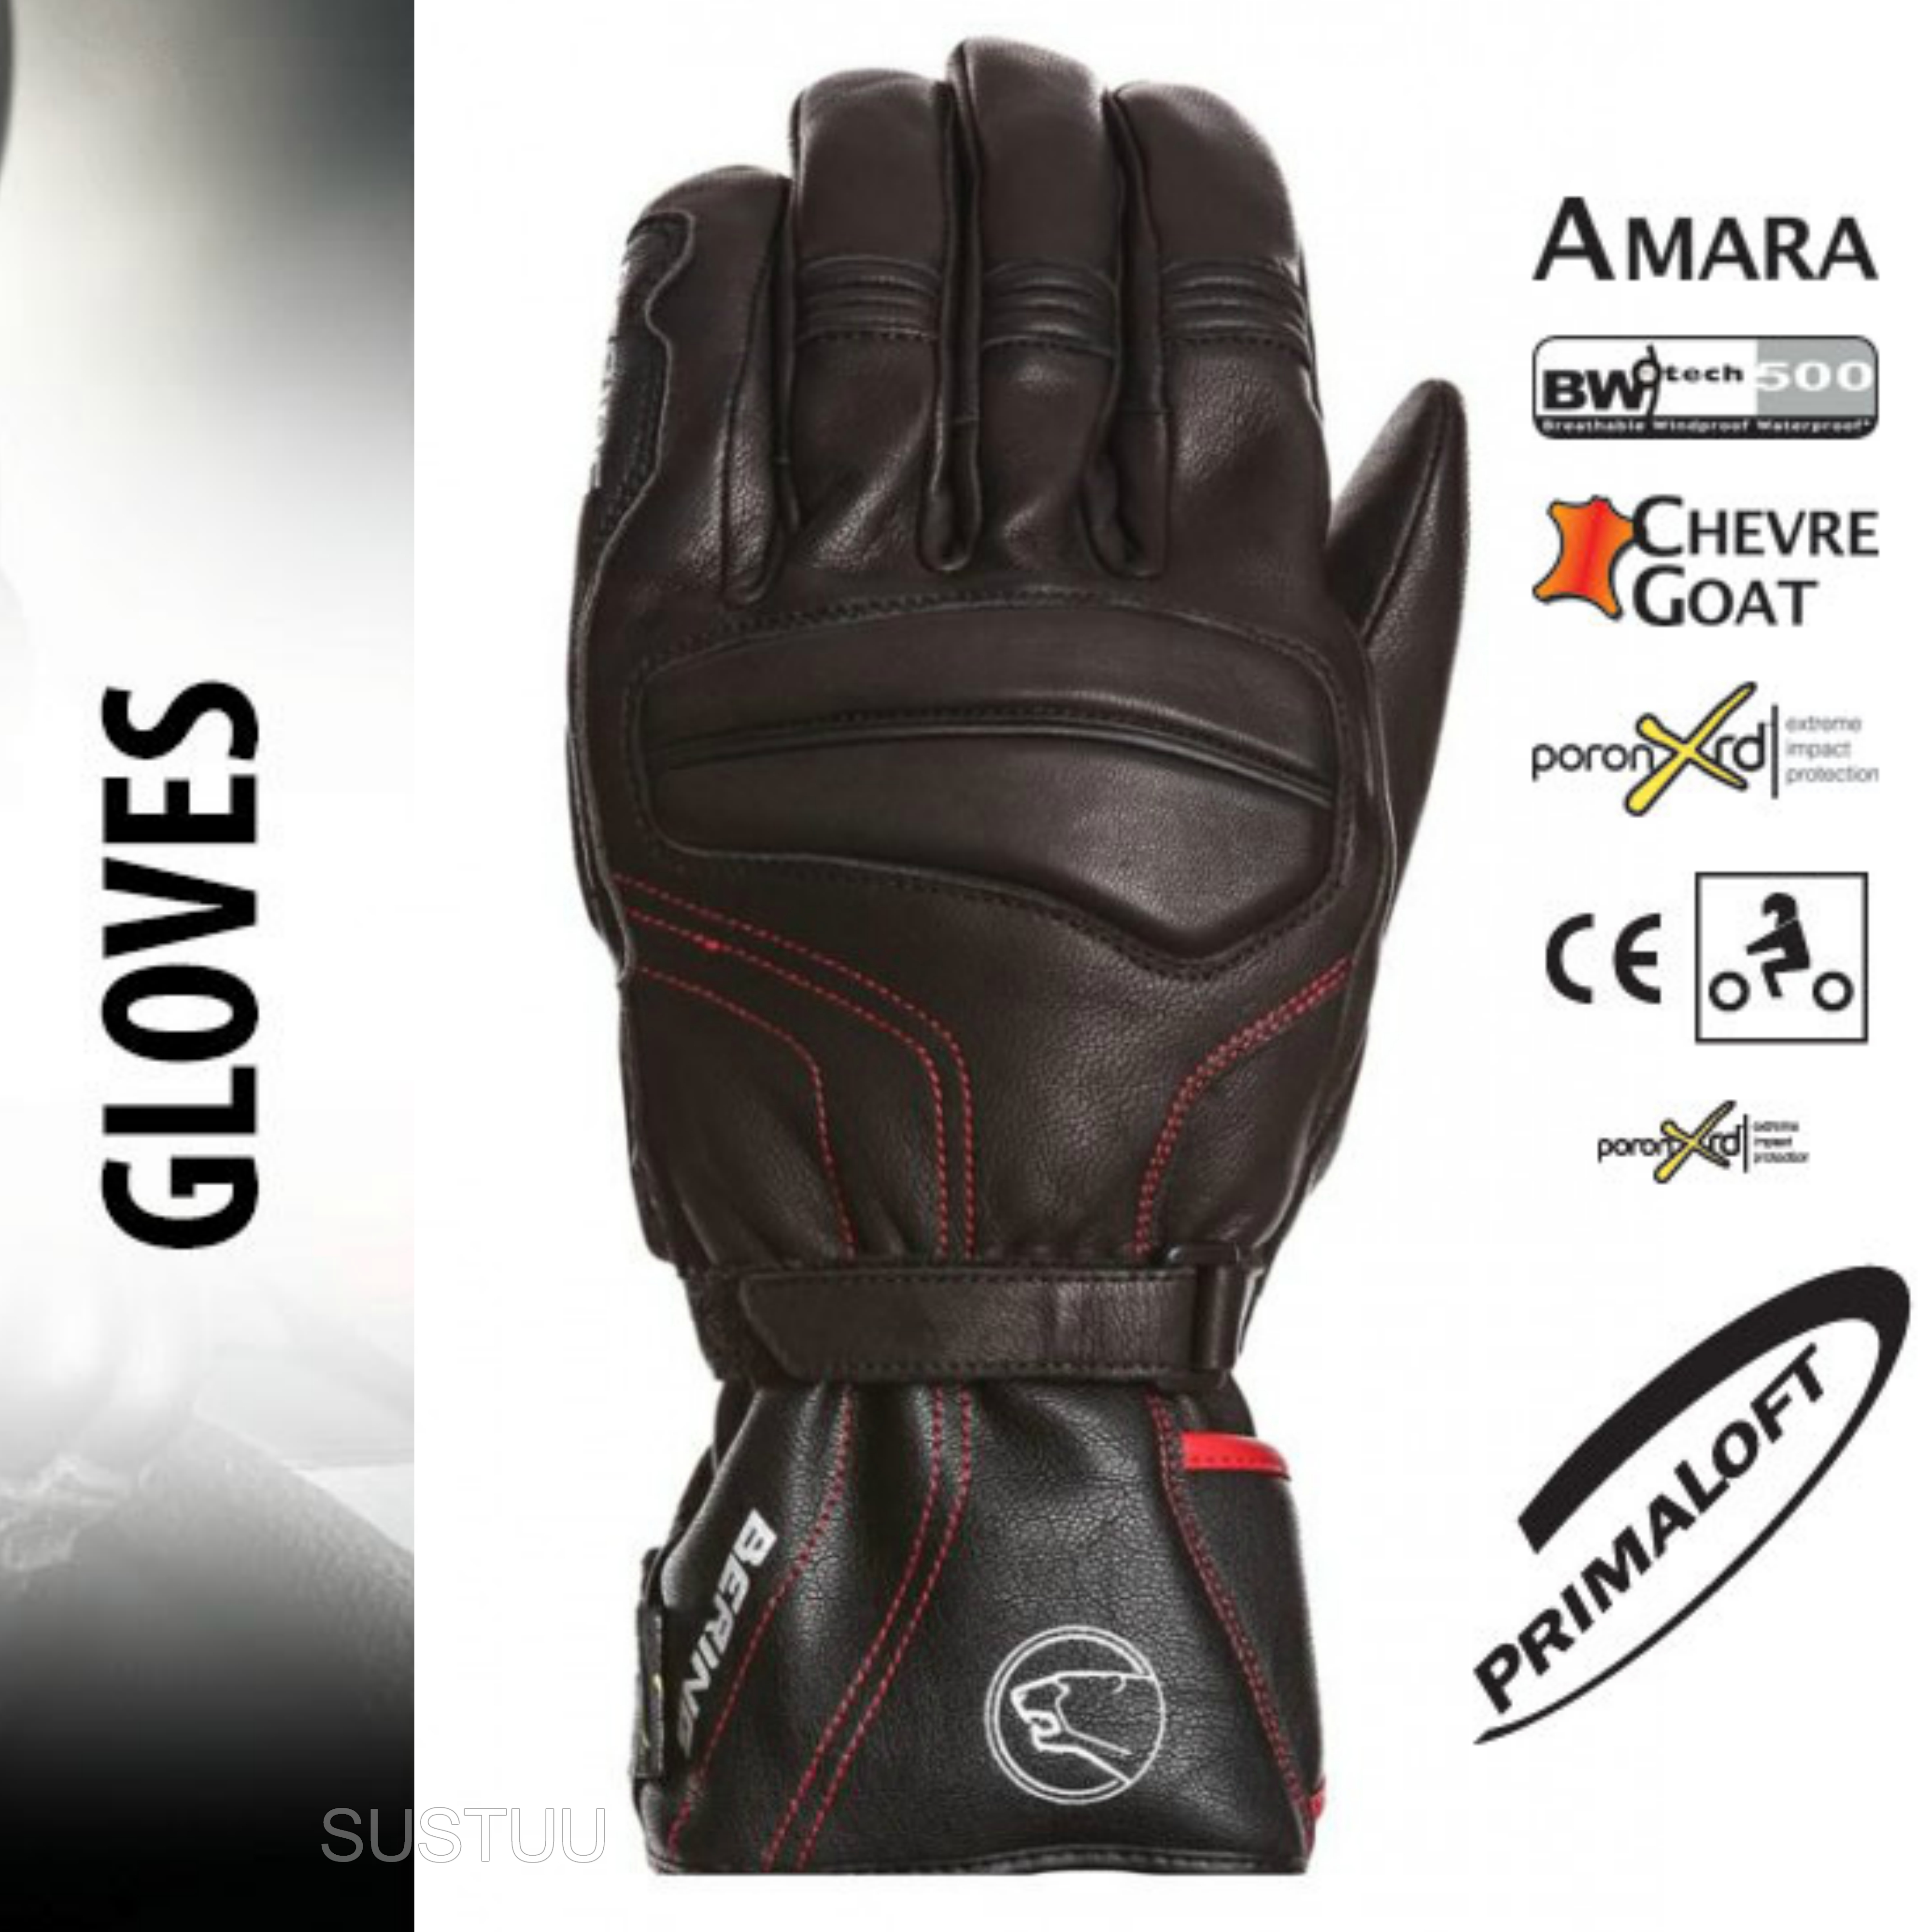 Bering Atlantis Motorcycle/Bike Winter Leather Gloves - Black|Waterproof|CE|For Men